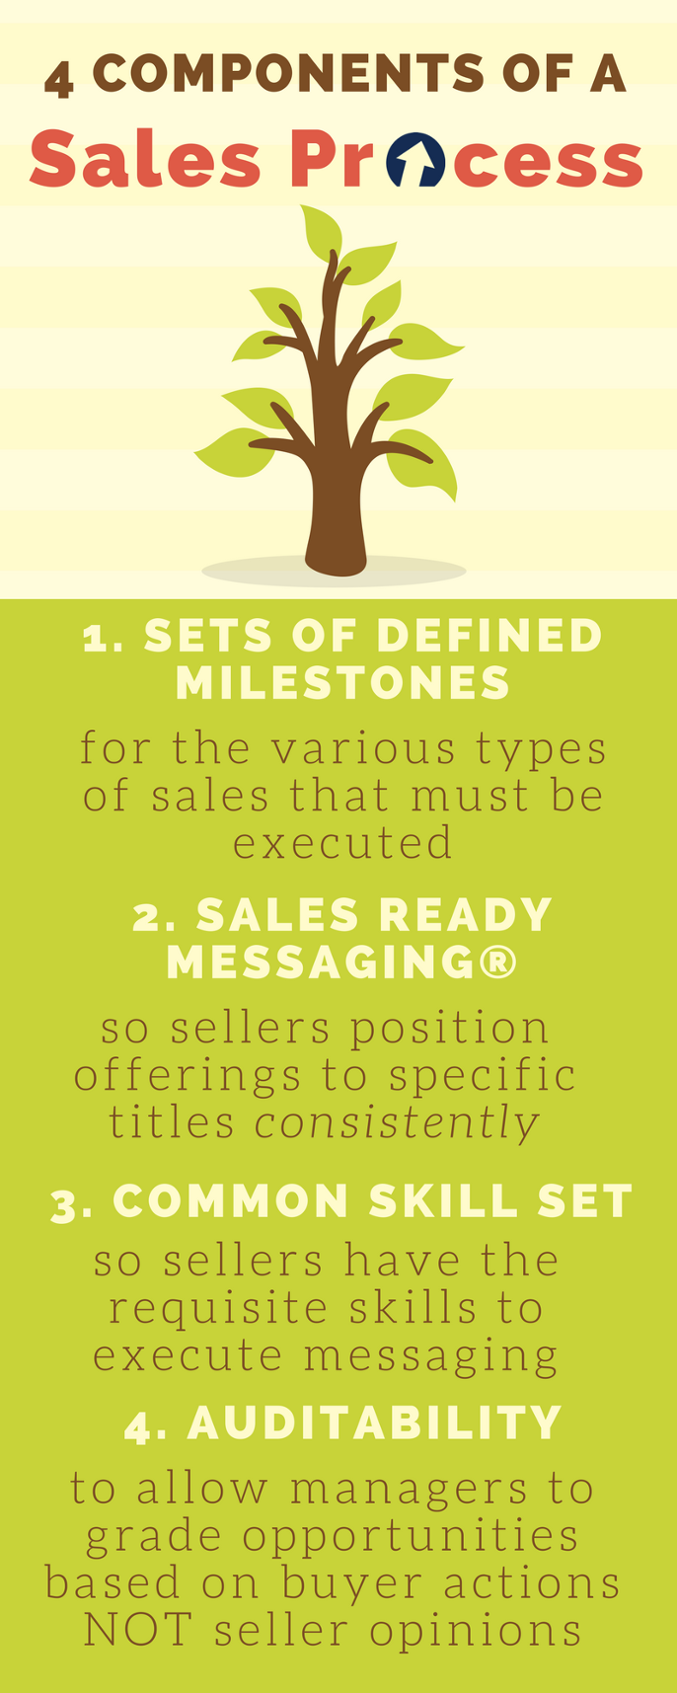 INFOGRAPHIC - 4 Components of a Sales Process